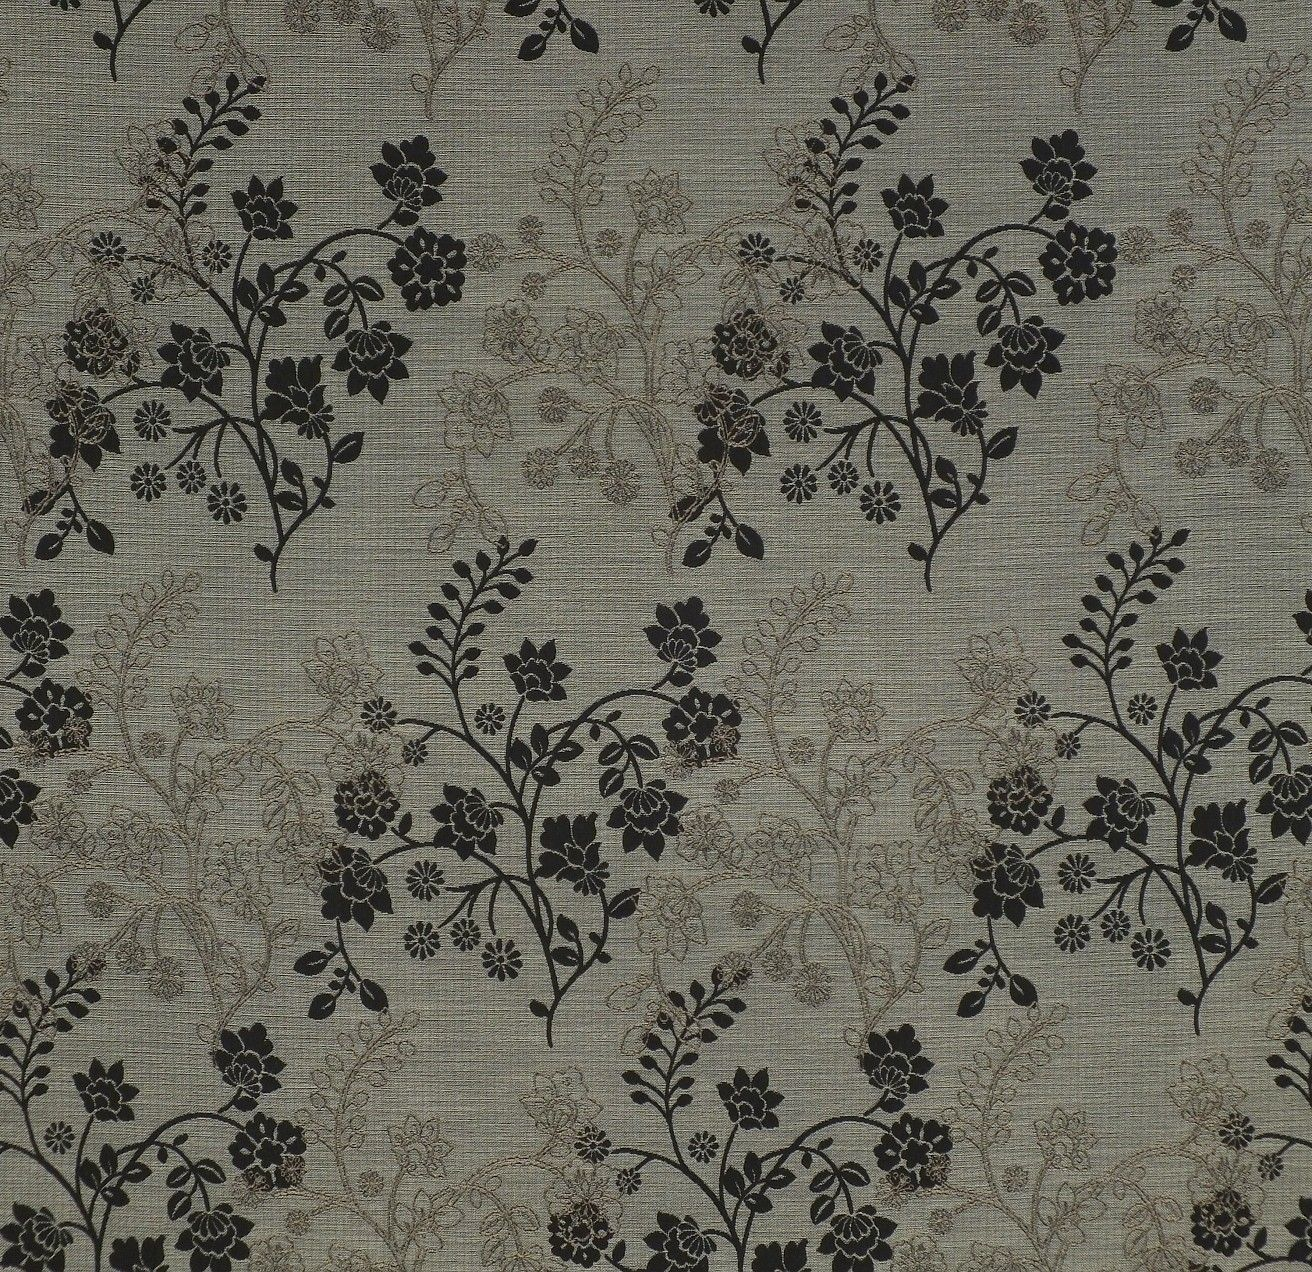 Upholstery Fabric Drapery Fabric Textile Fabric Althorp Upholstery Fabric Draped Fabric